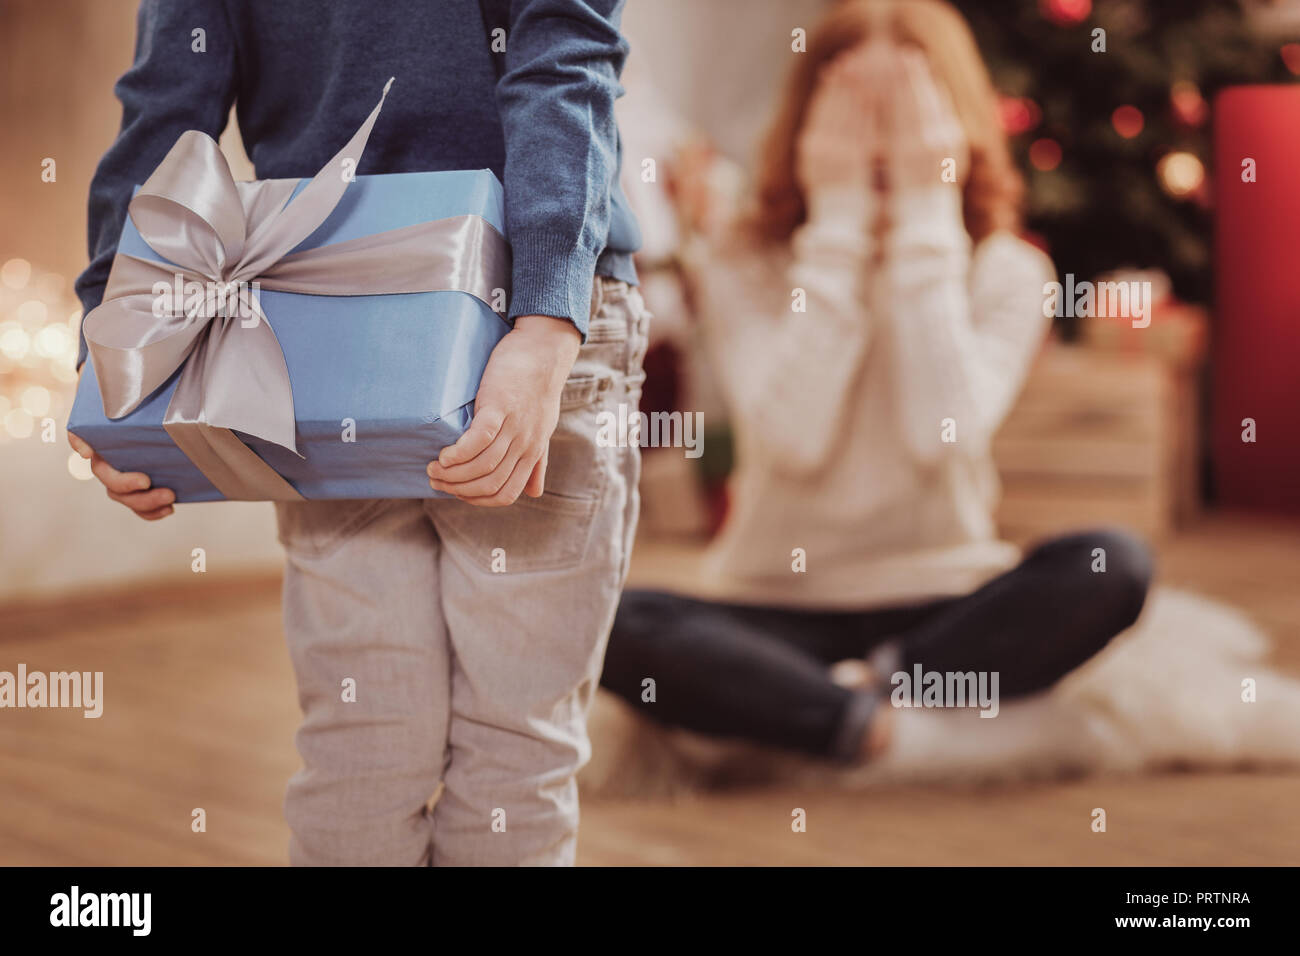 Rear view of unpredictable present for mother - Stock Image